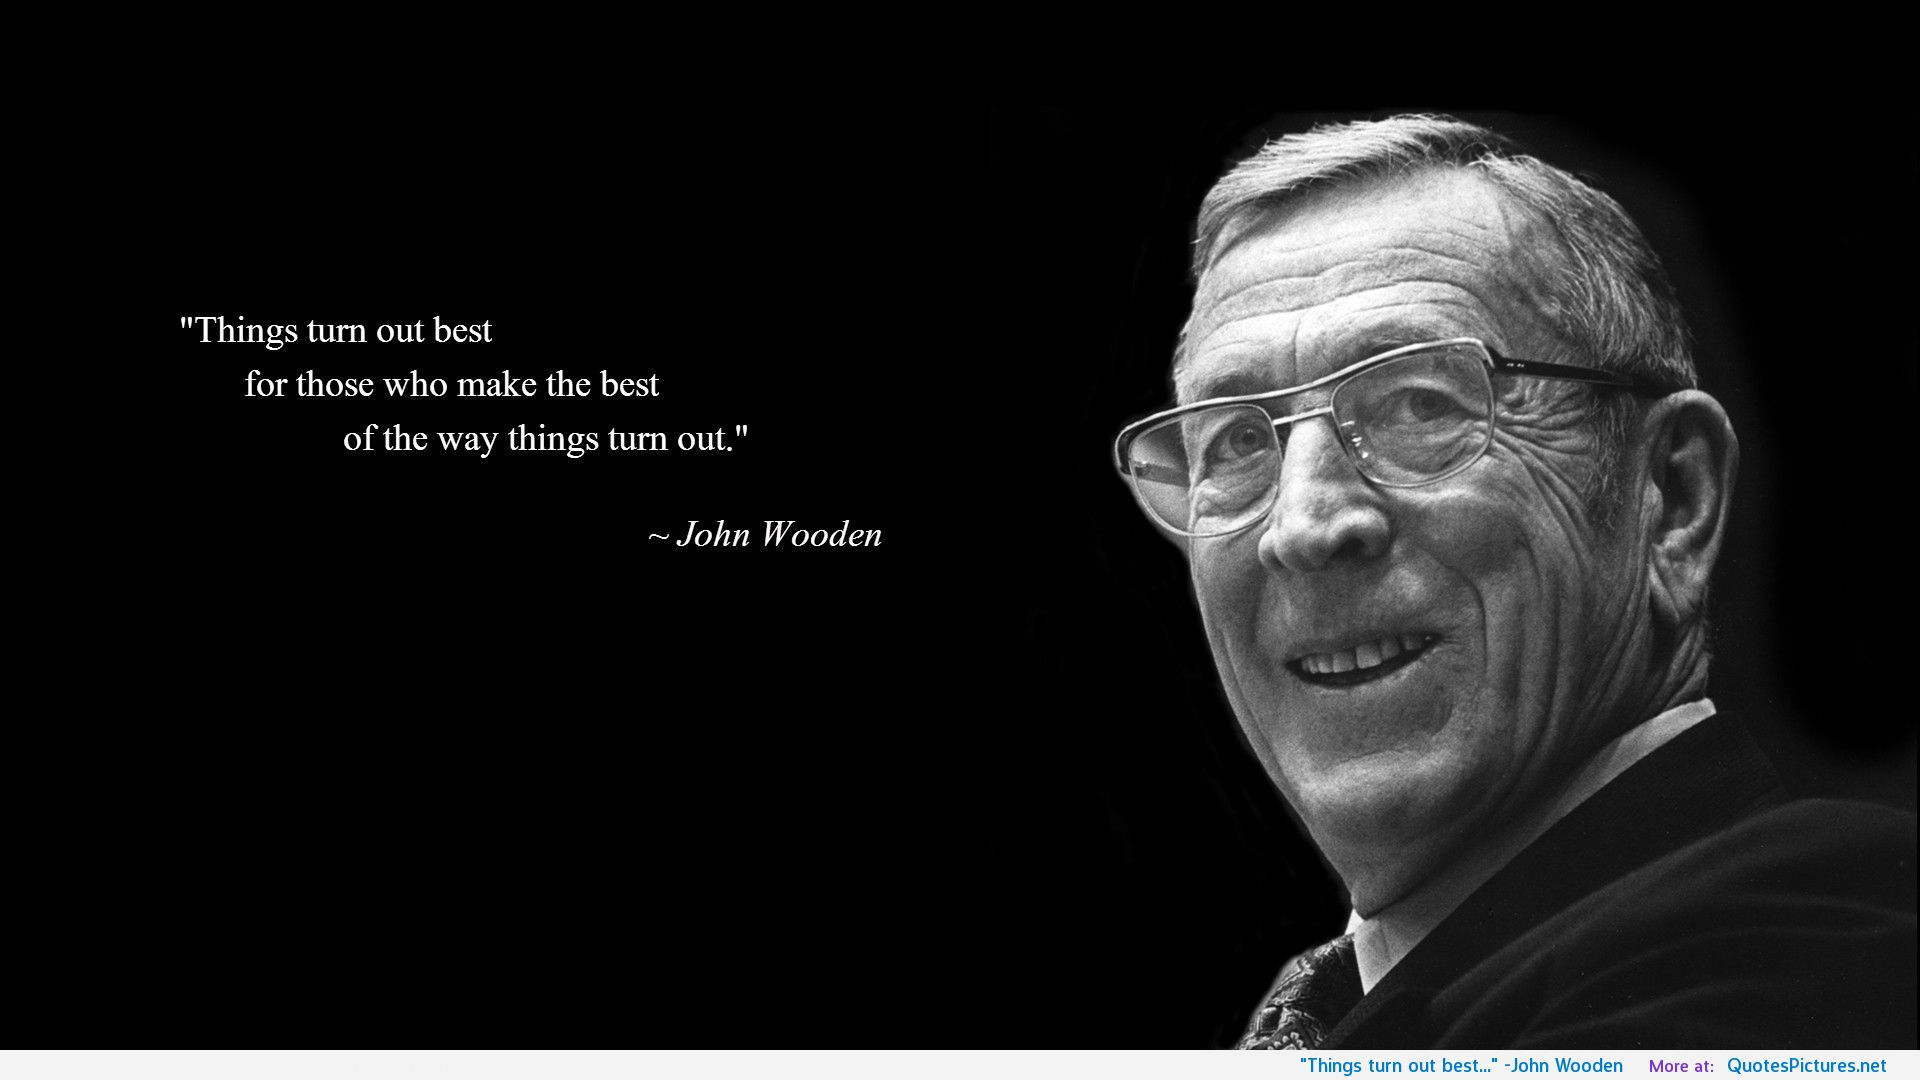 John Wooden Leadership Quotes Confidence In Your Jiujitsu  Wise Advice From Coach John Wooden .